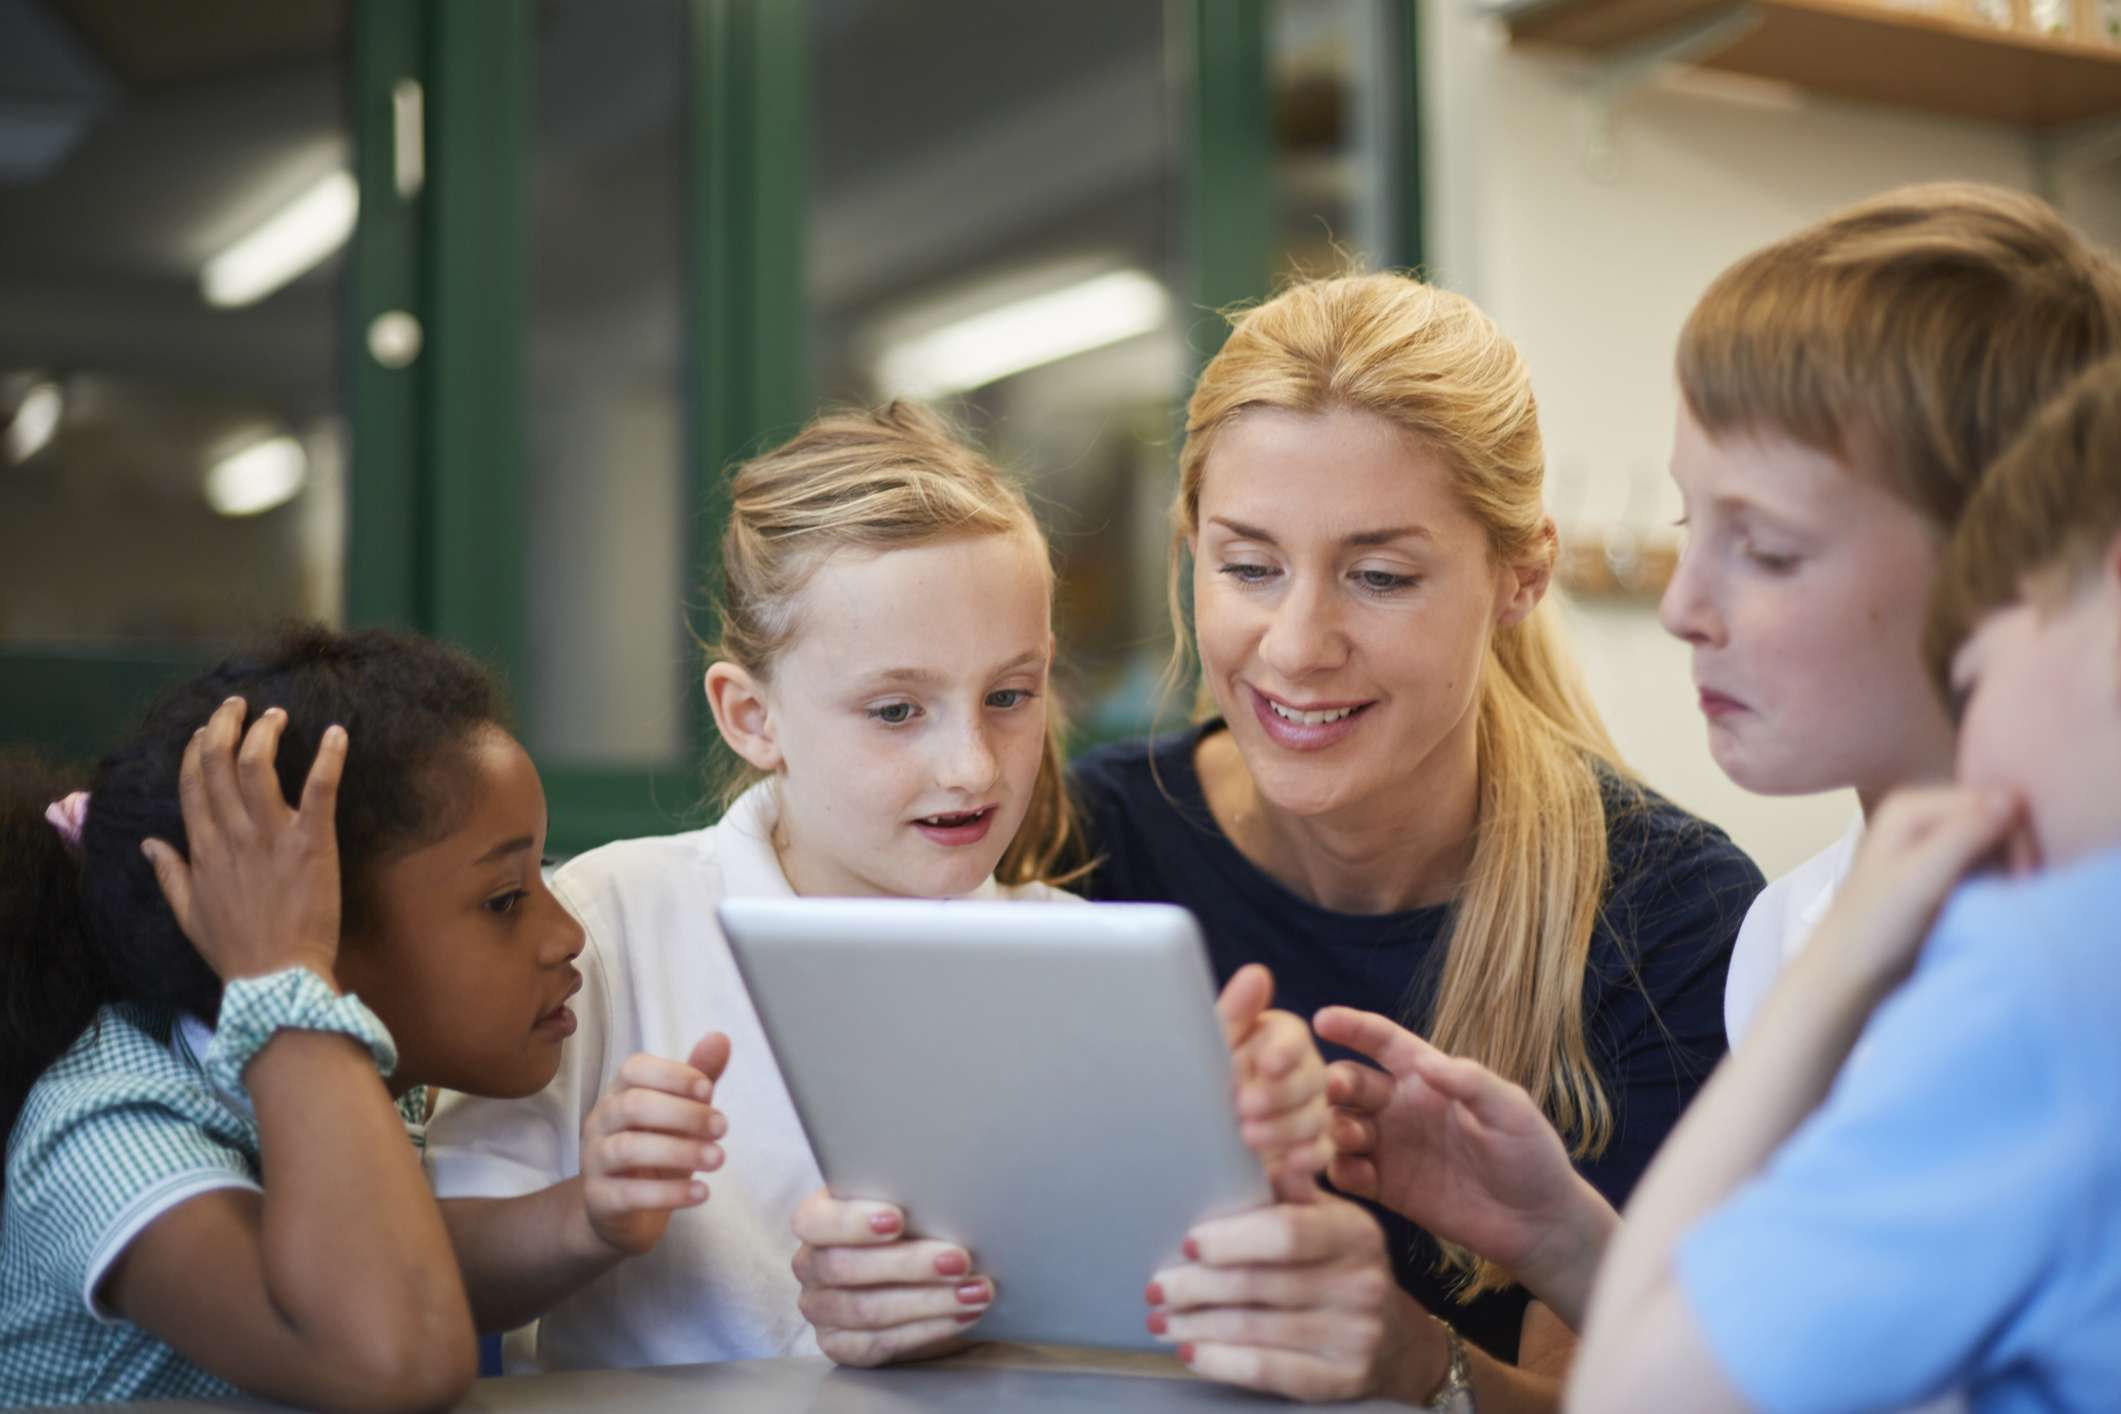 Substitute teacher reading from tablet to schoolboys and girls in classroom